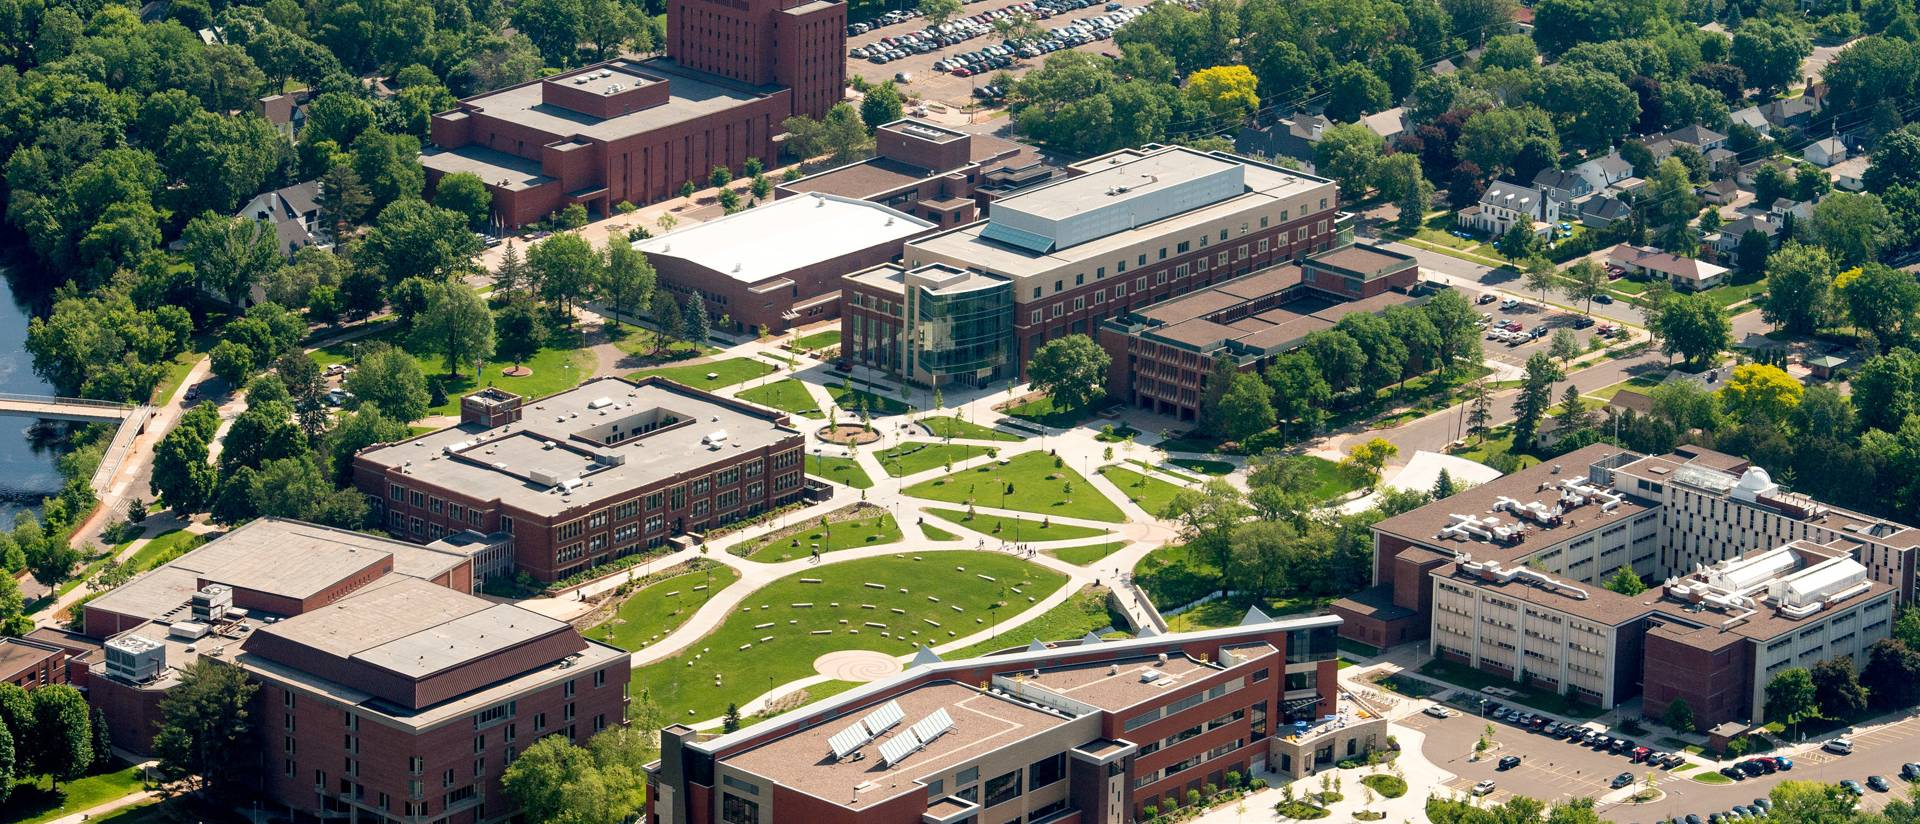 Aerial view of lower UW-Eau Claire campus